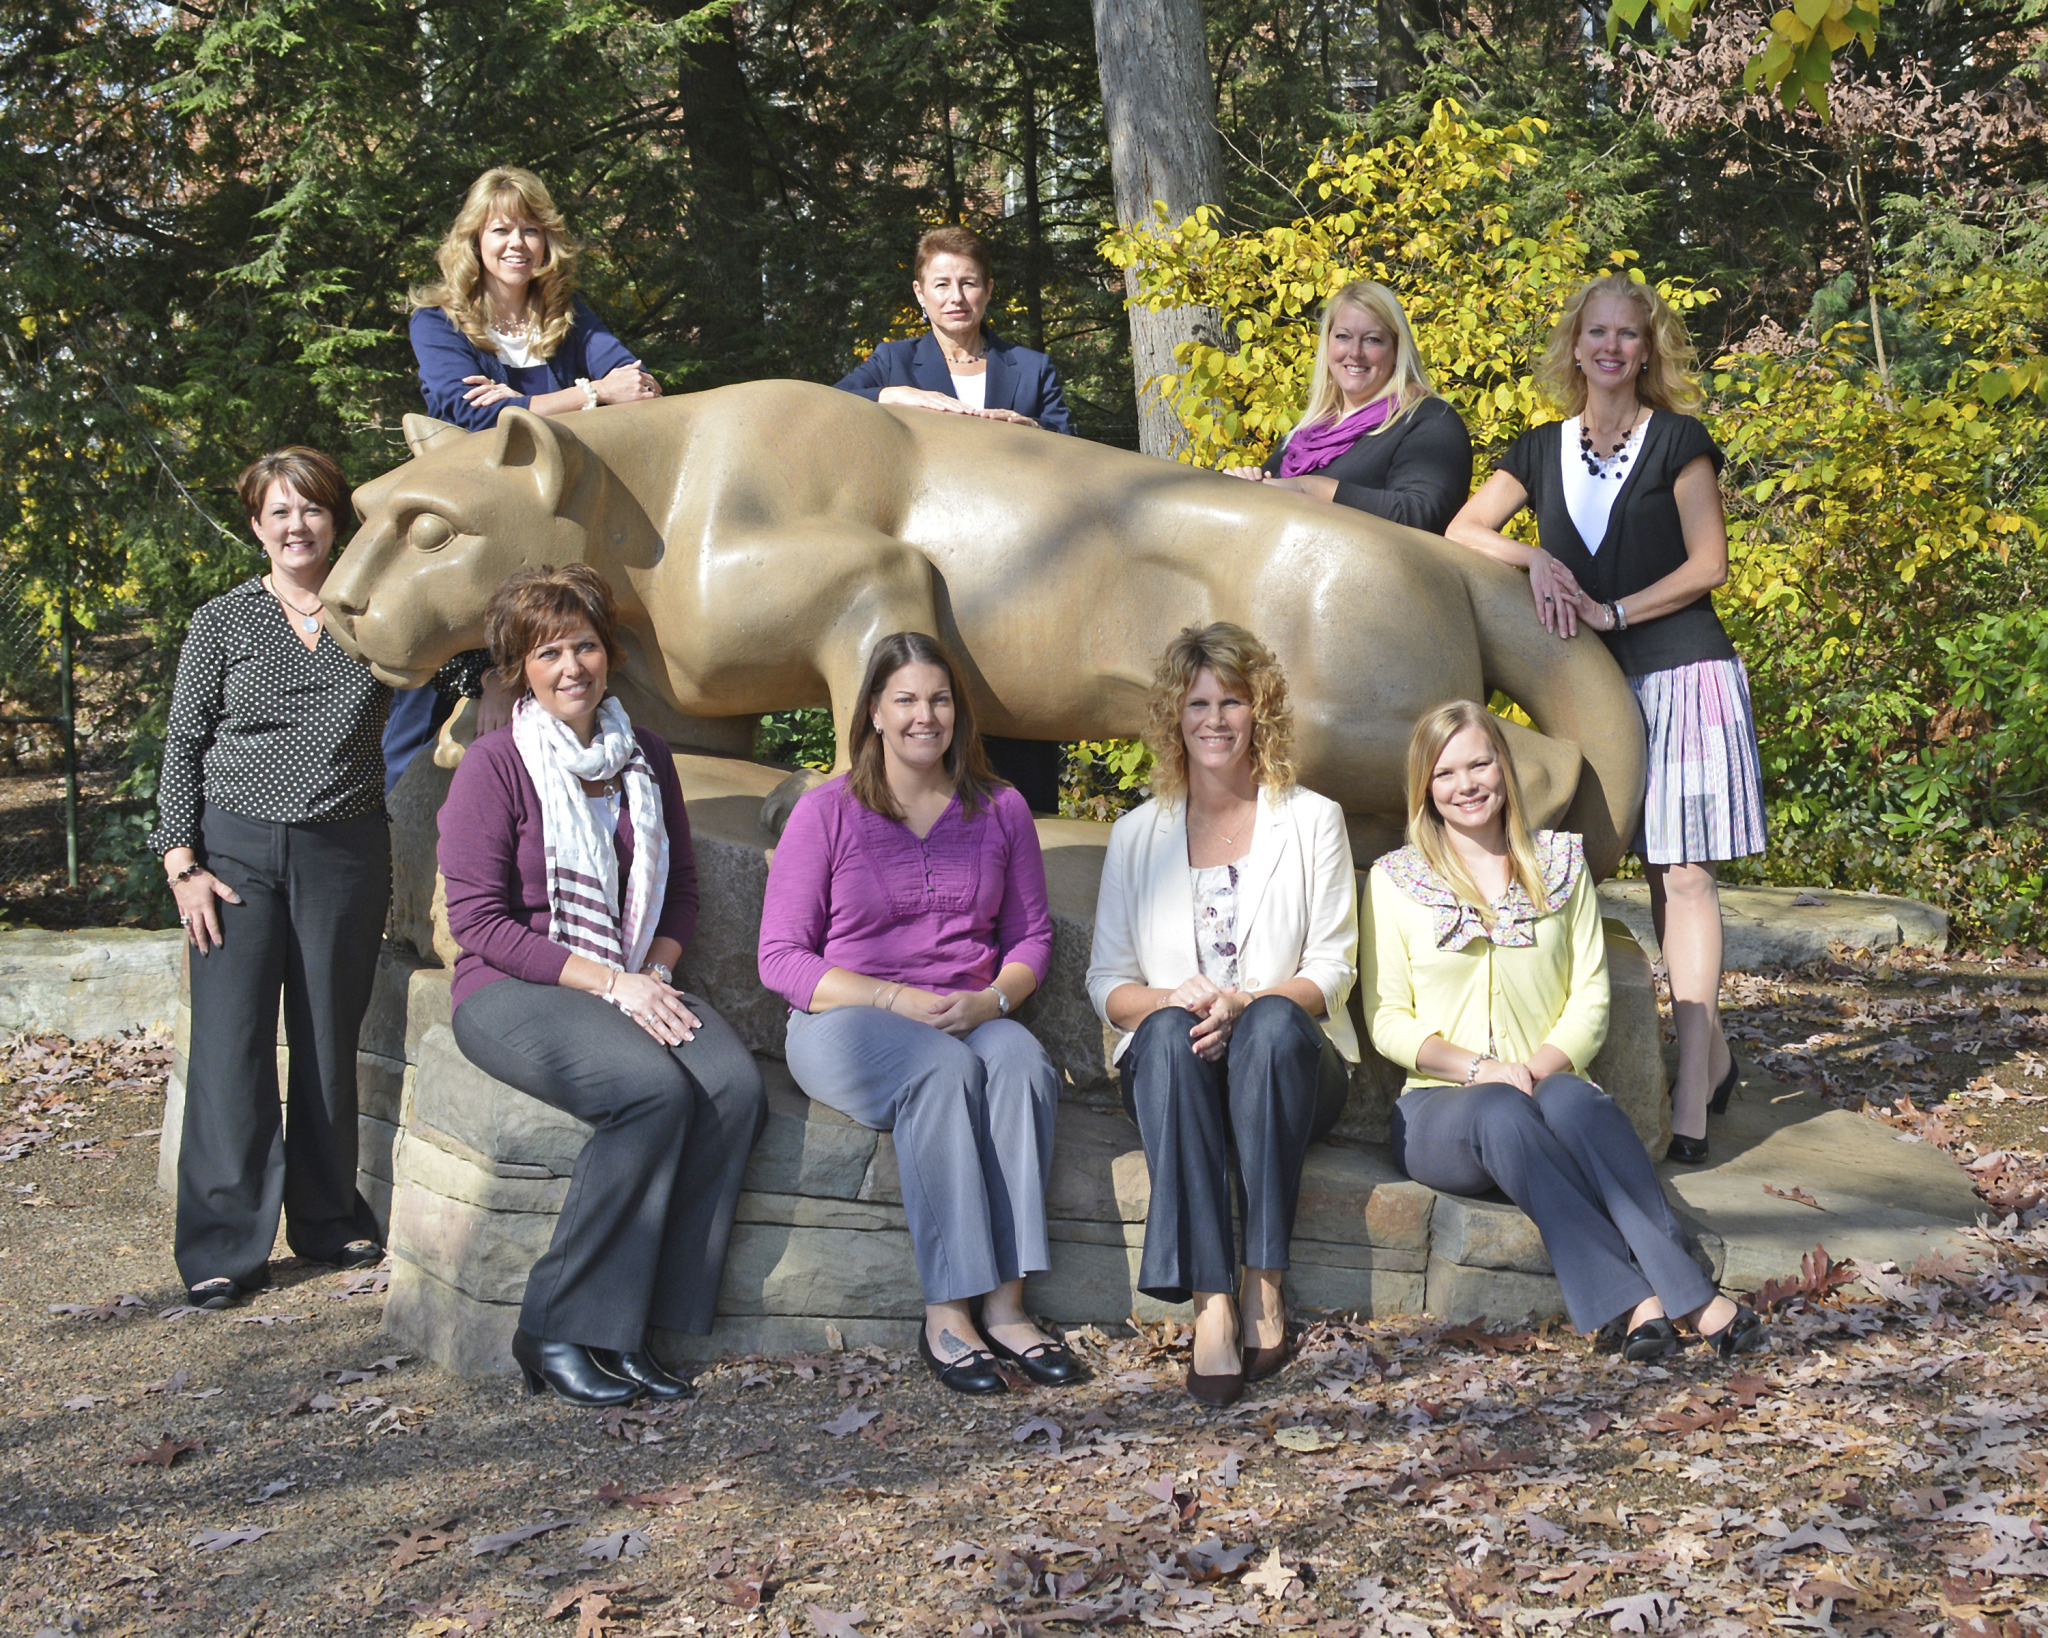 PSEOP Executive Board: Back row (L-R) Laurinda Benner (president ex-officio), Pamela Stauffer (president), Diane Collins (vice president), Amy Long (treasurer ex-officio), Mindy Terpack (secretary ex-officio). Bottom (L-R) Cherish McAulay (assistant treasurer), Michelle Hill (secretary), Kim Swistock (assistant secretary), Alesha Gavlock (treasurer).